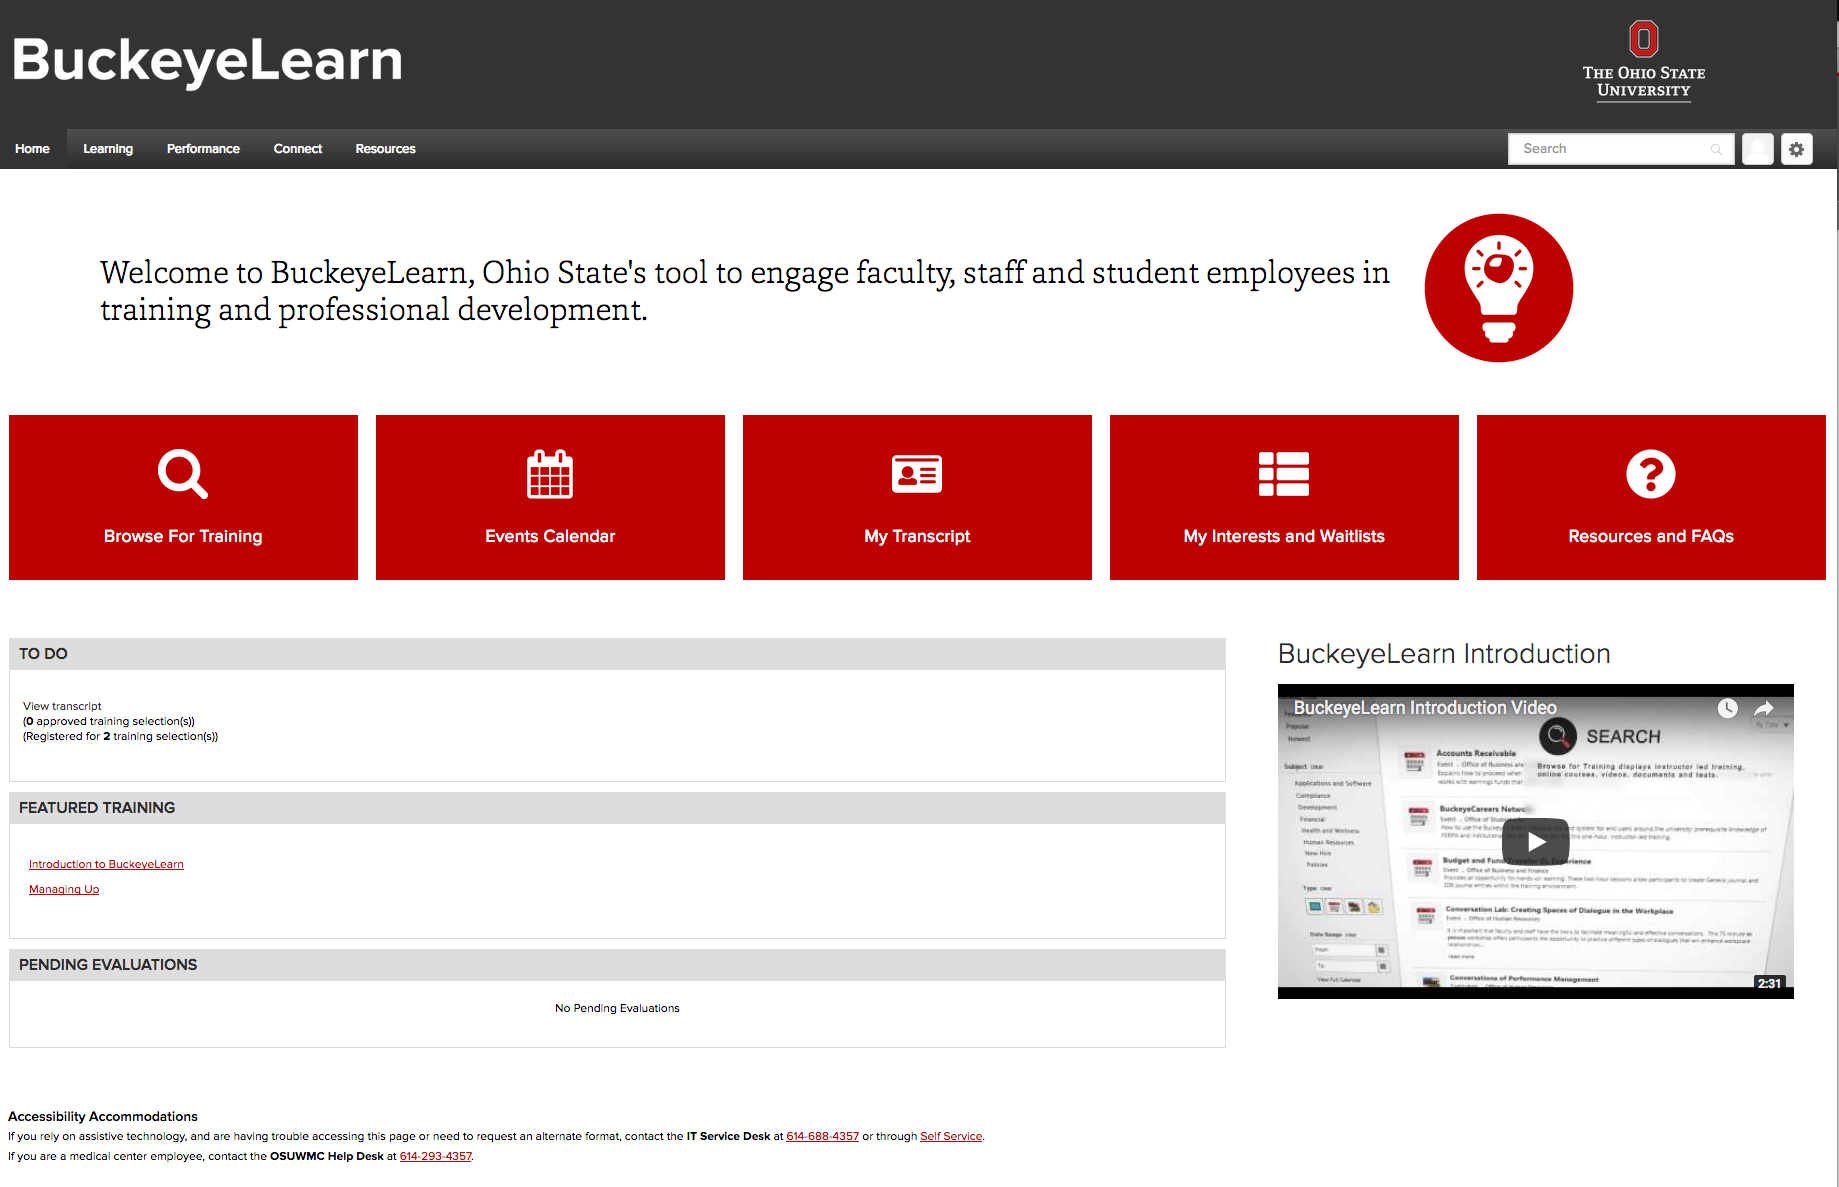 Newslink office of the cio at ohio state april 11 buckeyelearn homepage redesign kristyandbryce Gallery